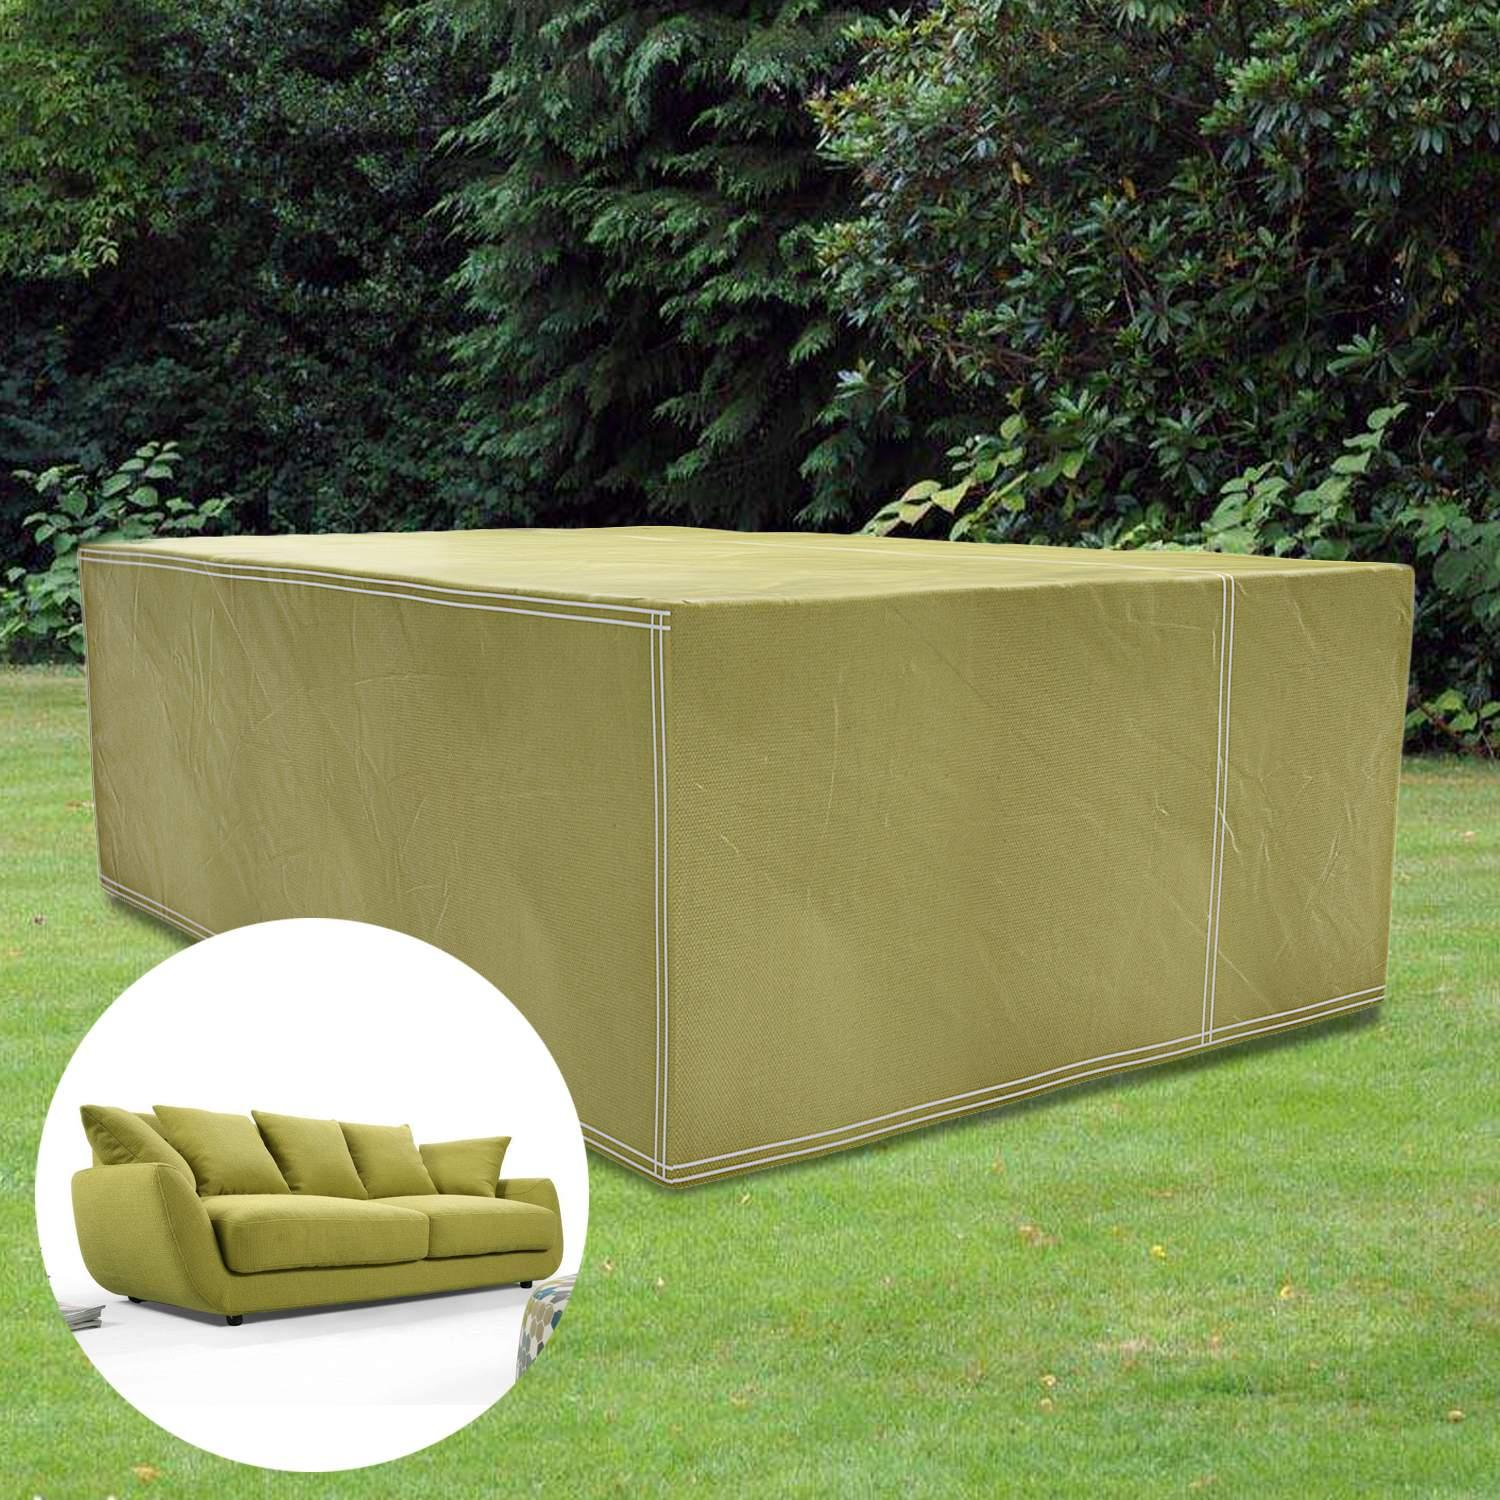 Besting Furniture Cover Large Rectangular Waterproof Garden Outdoor Patio Table Chairs Covers Wheat Army Green